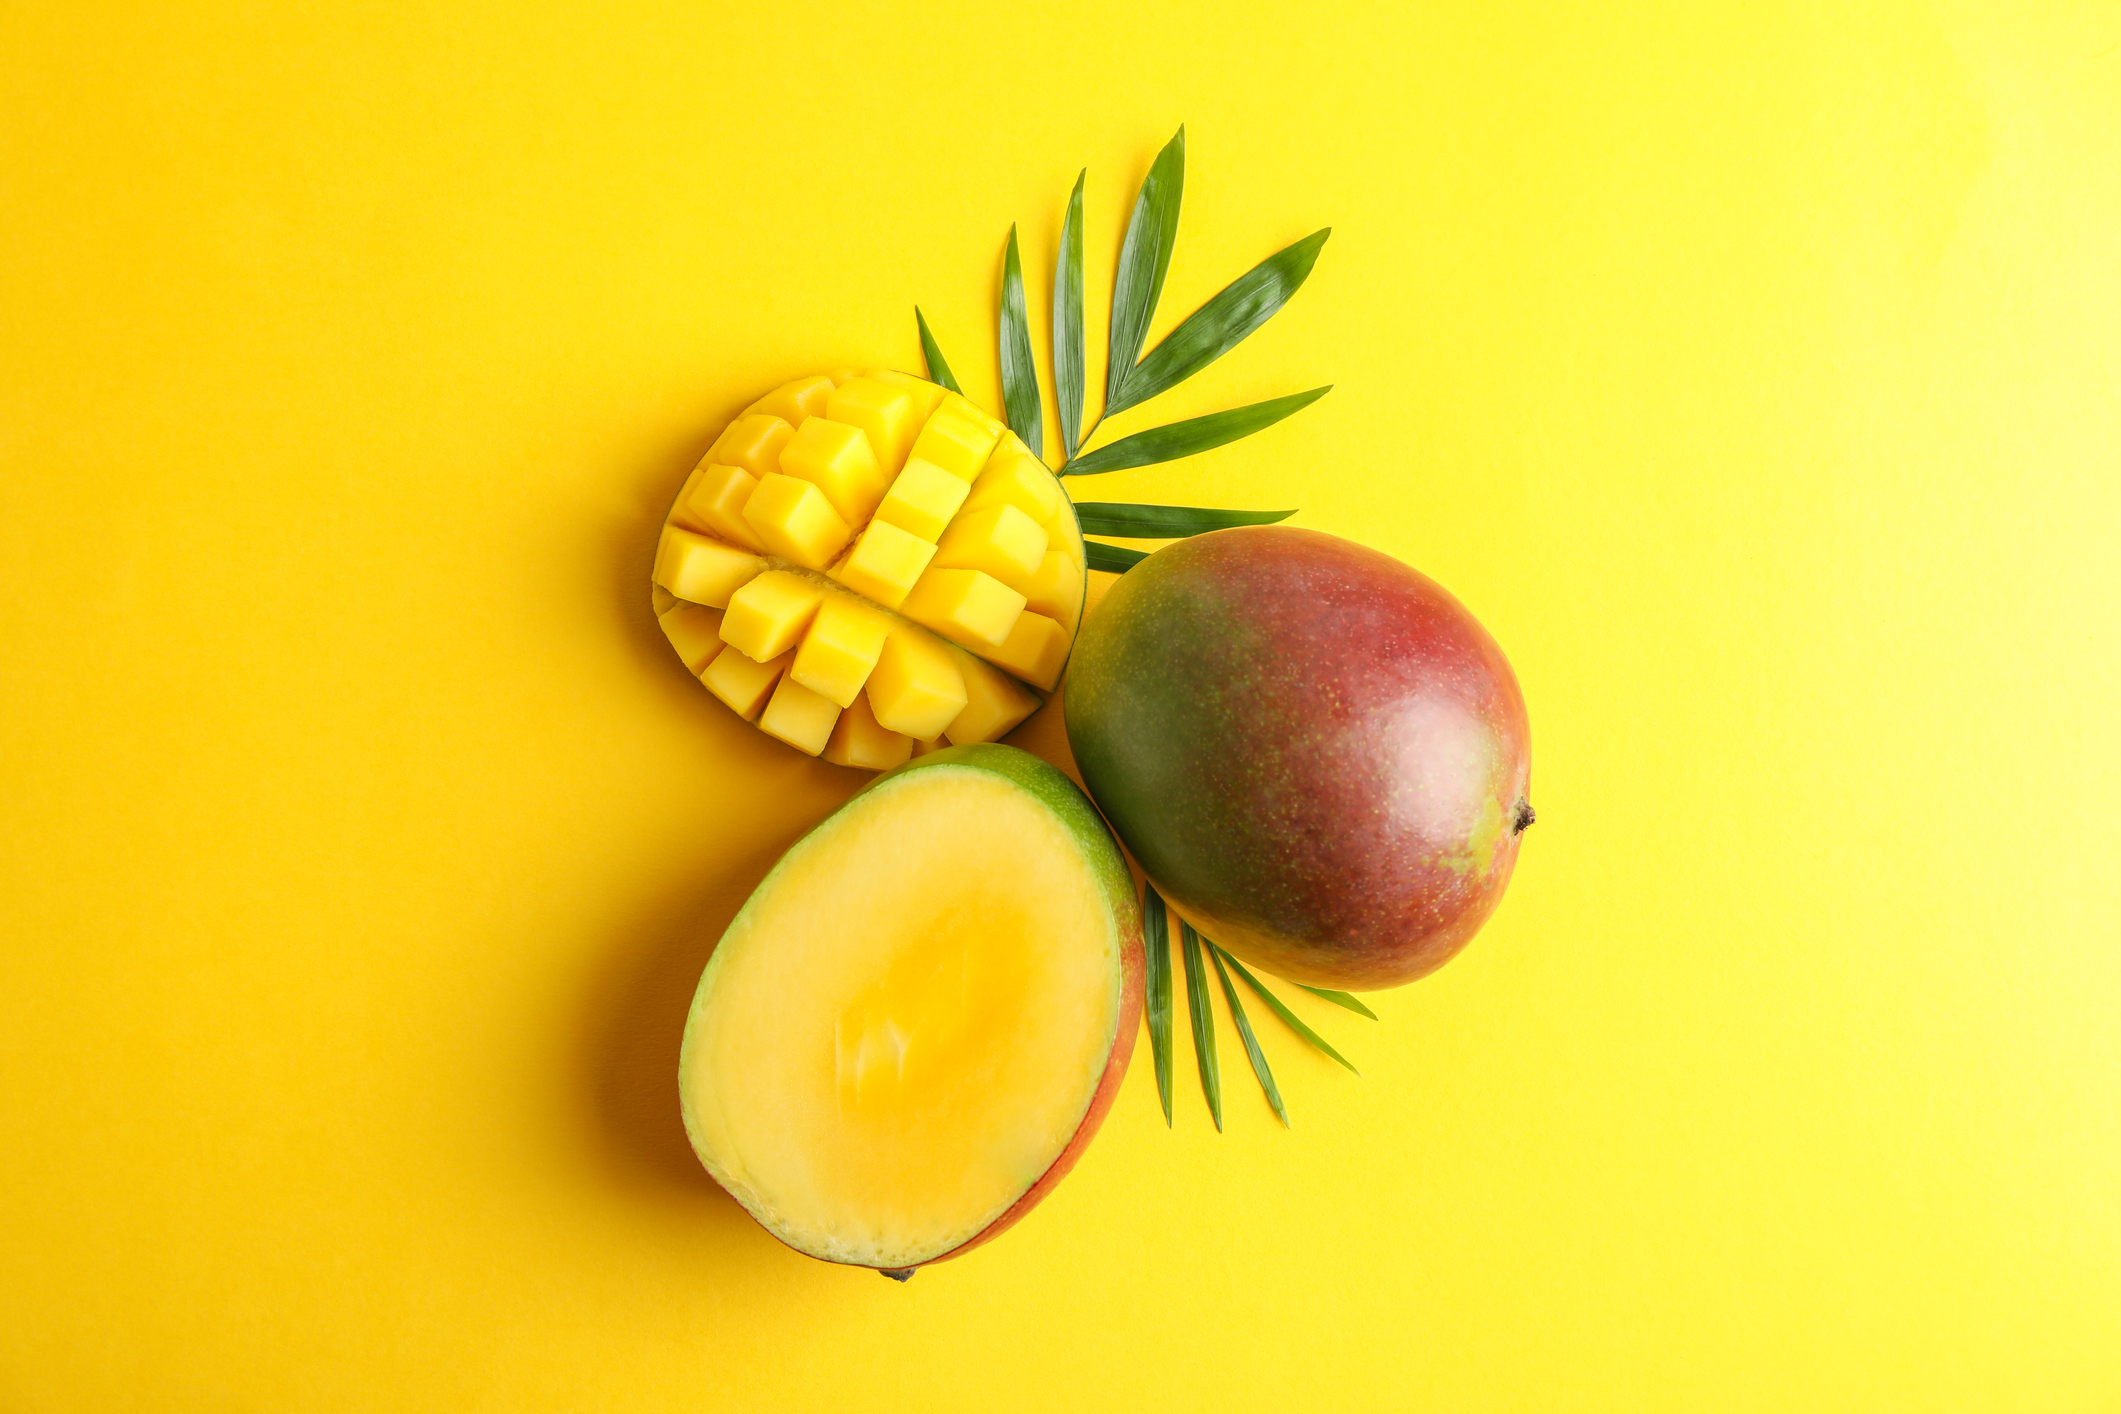 Mangoes pack powerful prevention potential against 3 cancers